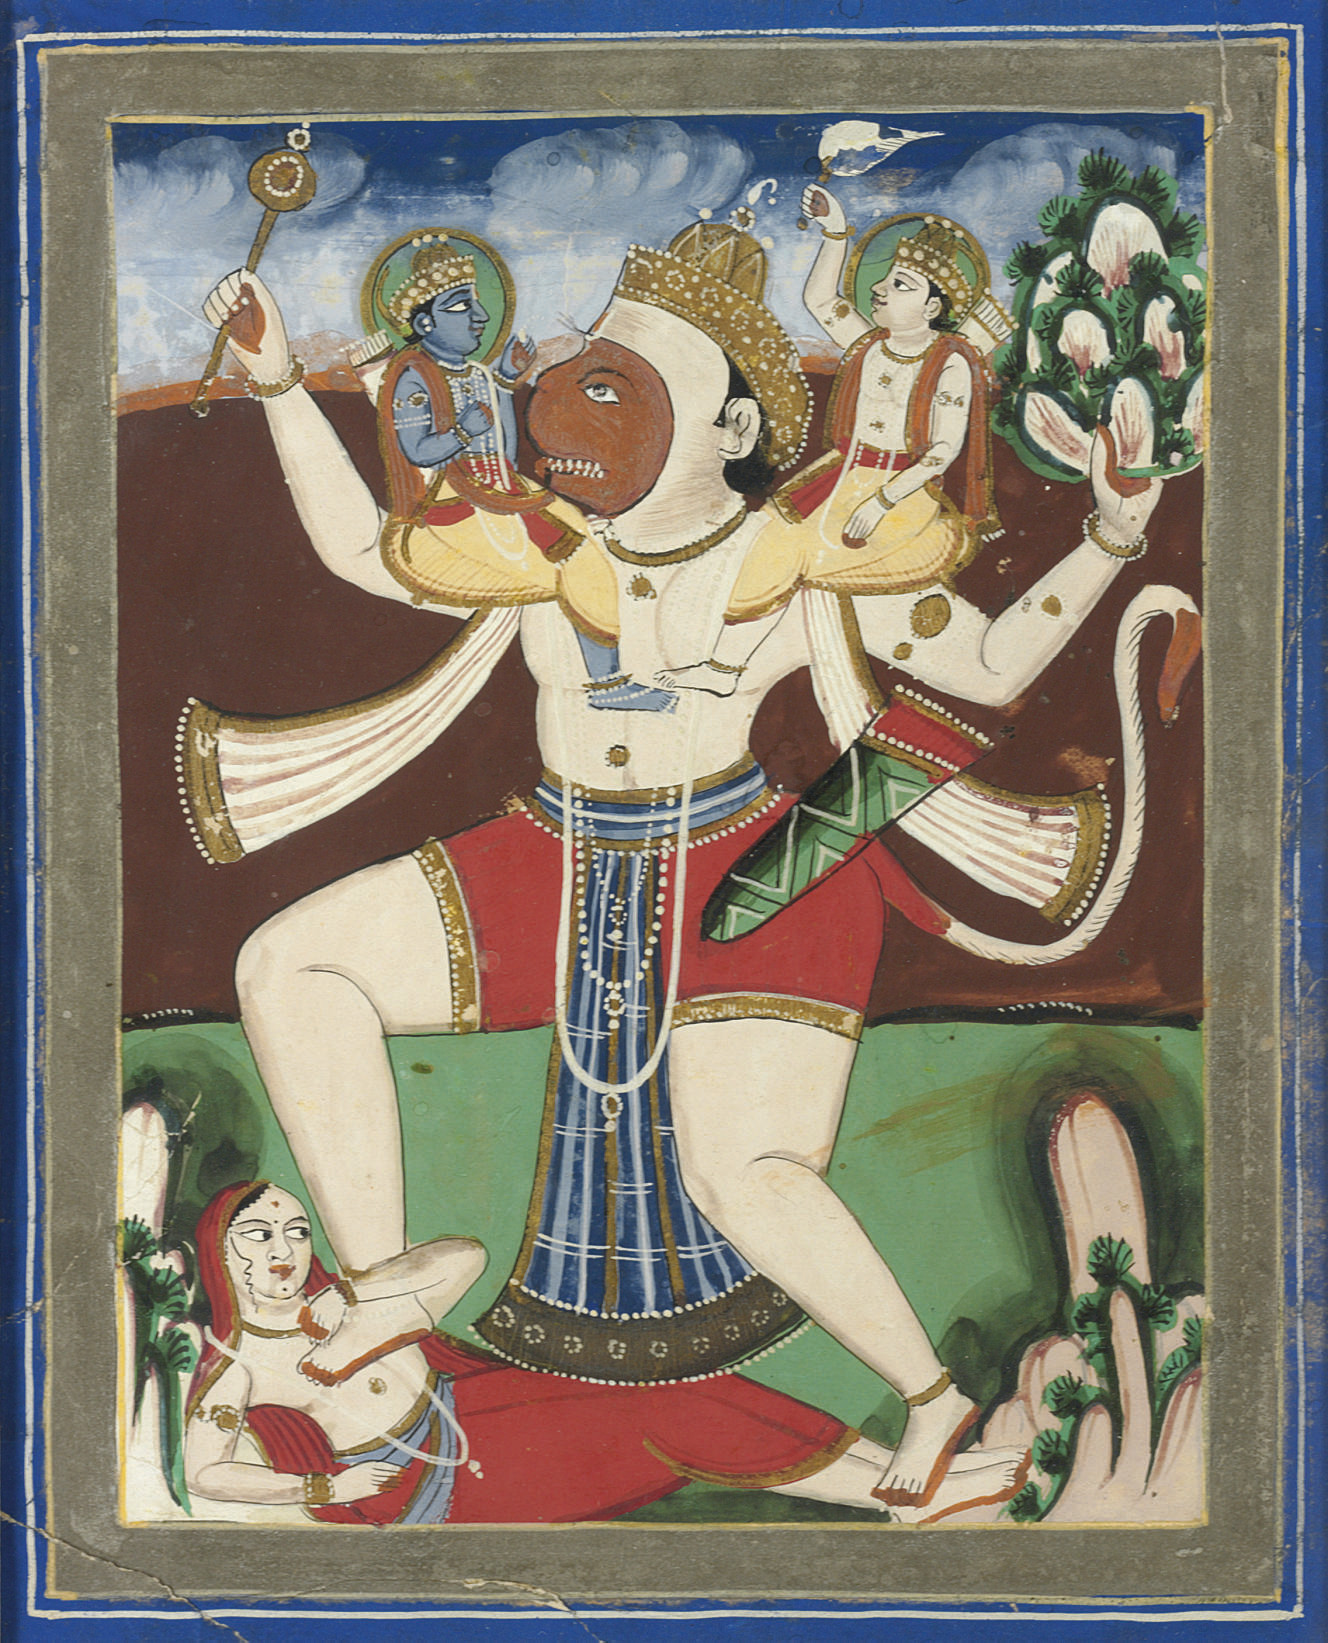 The Cosmic Form of Hanuman